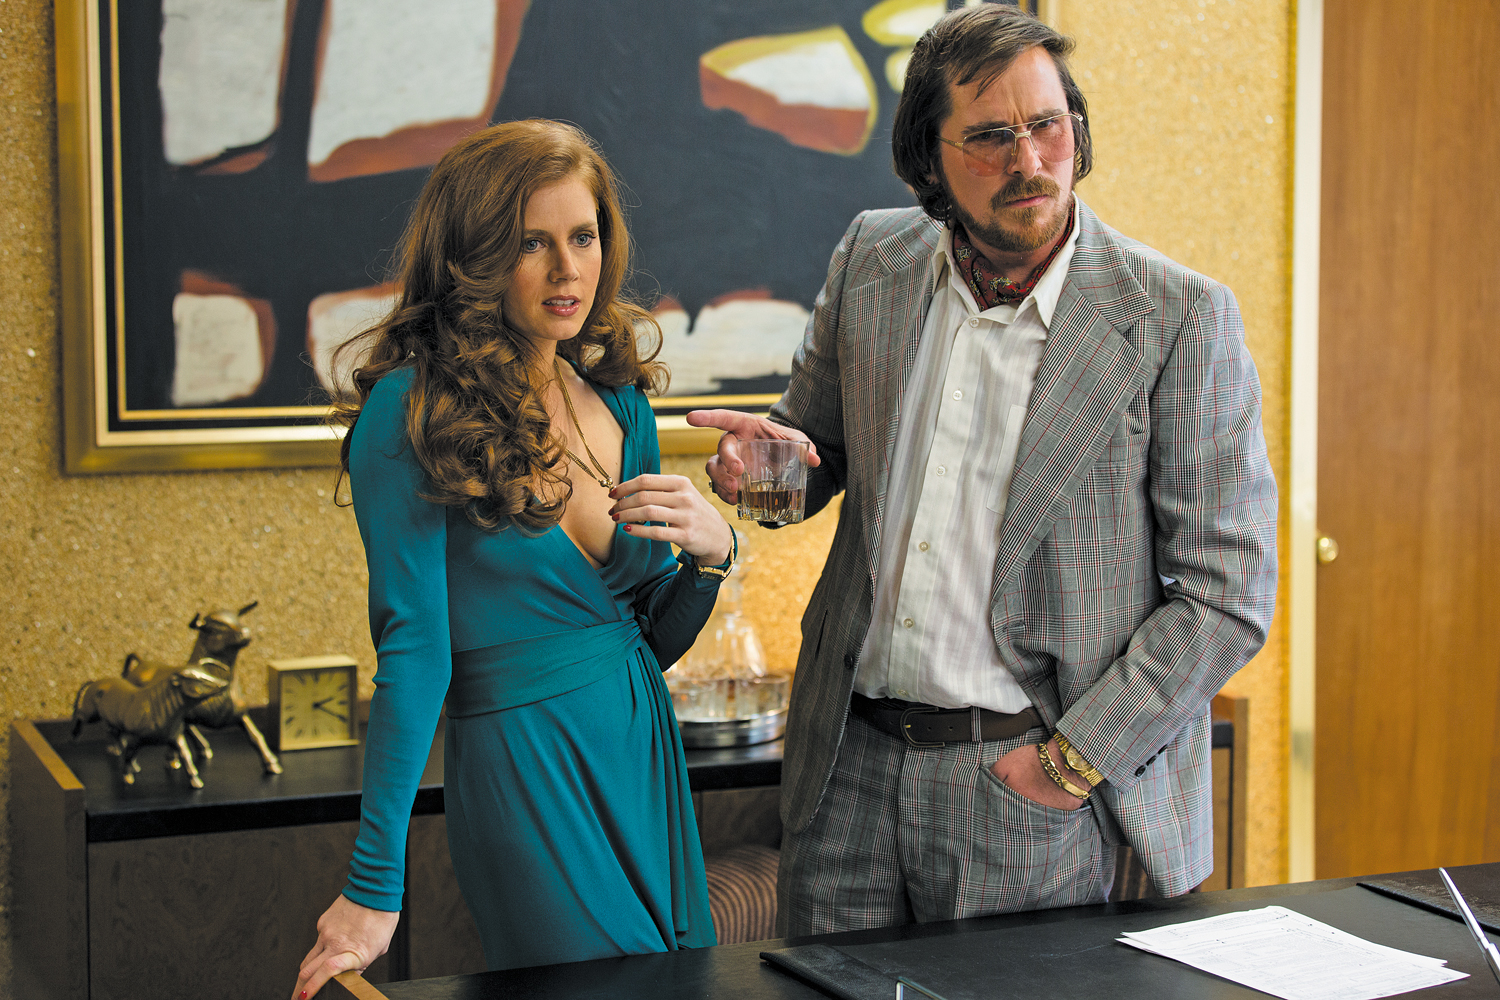 Amy-Adams-and-Christian-Bale-in-American-Hustle